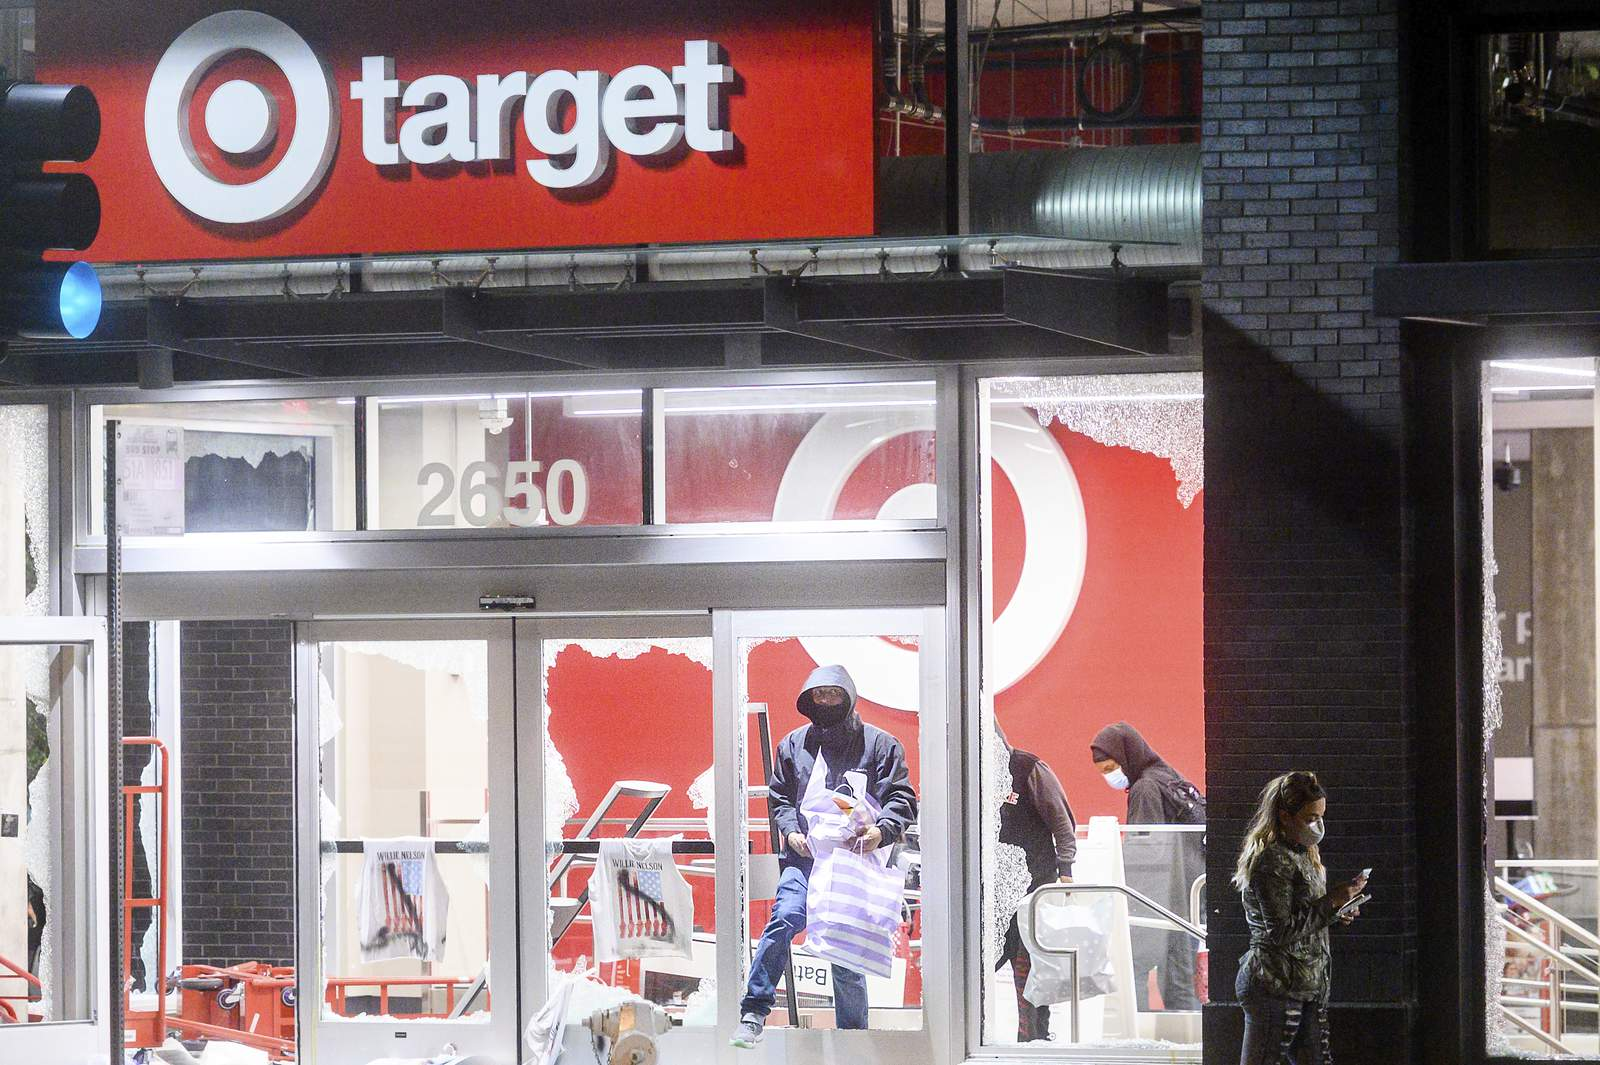 Target temporarily closing stores due to protest dangers